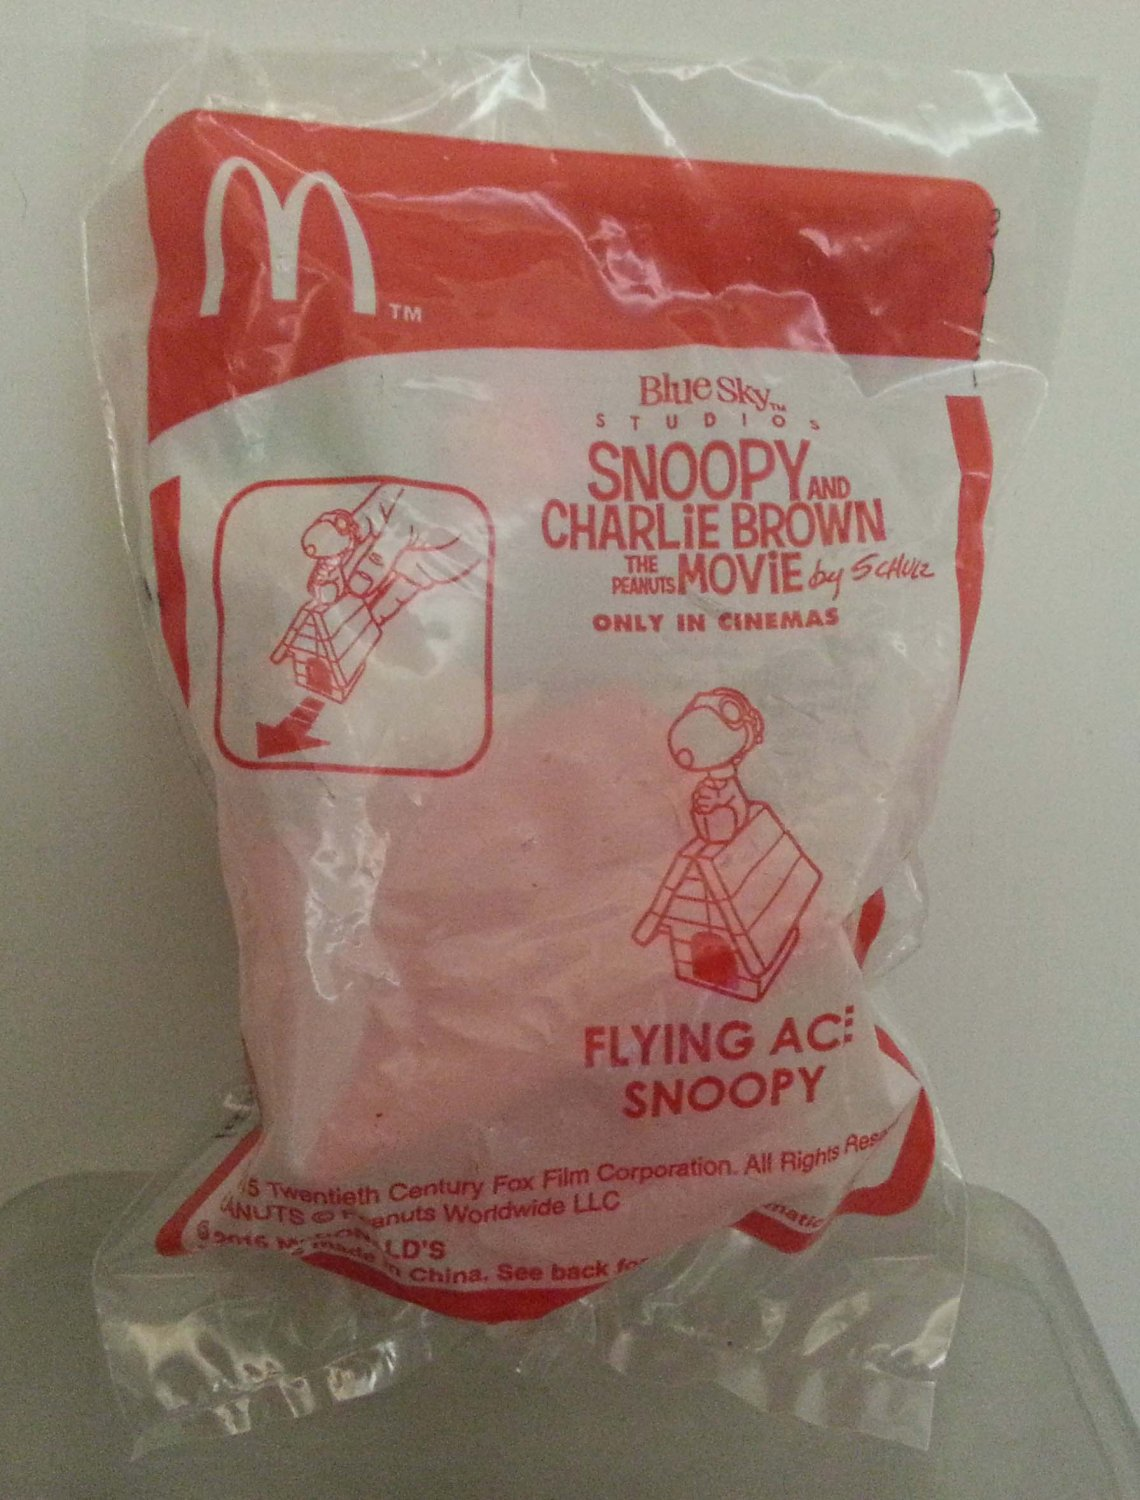 McDonald's Happy Meal Snoopy and Charlie Brown The Peanuts Movie Only in Cinemas - Flying Ace Snoopy